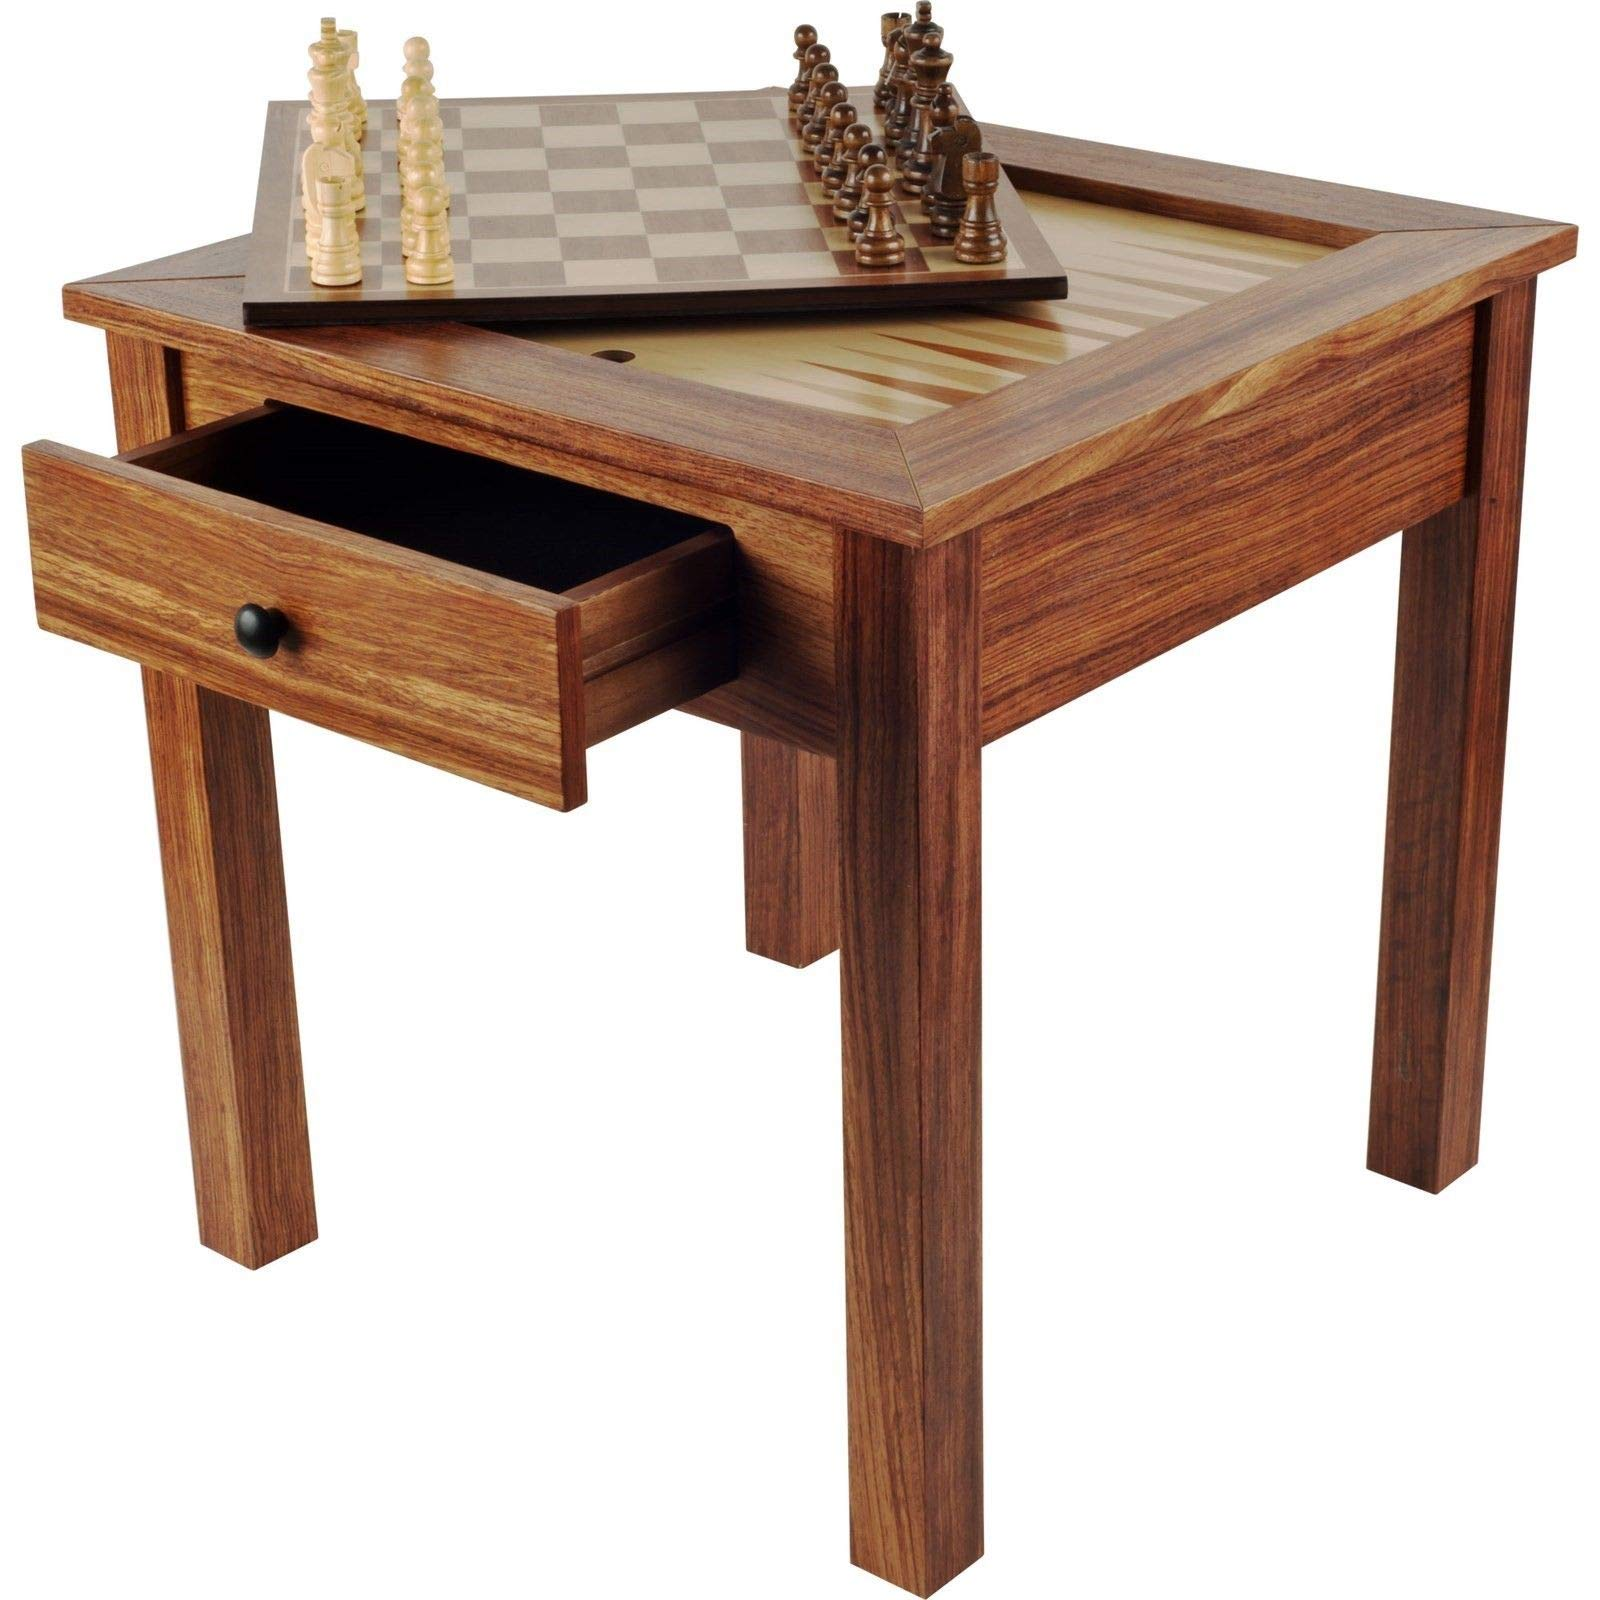 Wooden Chess Backgammon Checkers Table 19 x 19 x 19 for Business Customers and B2B by Smart Choice America by SMART CHOICE AMERICA